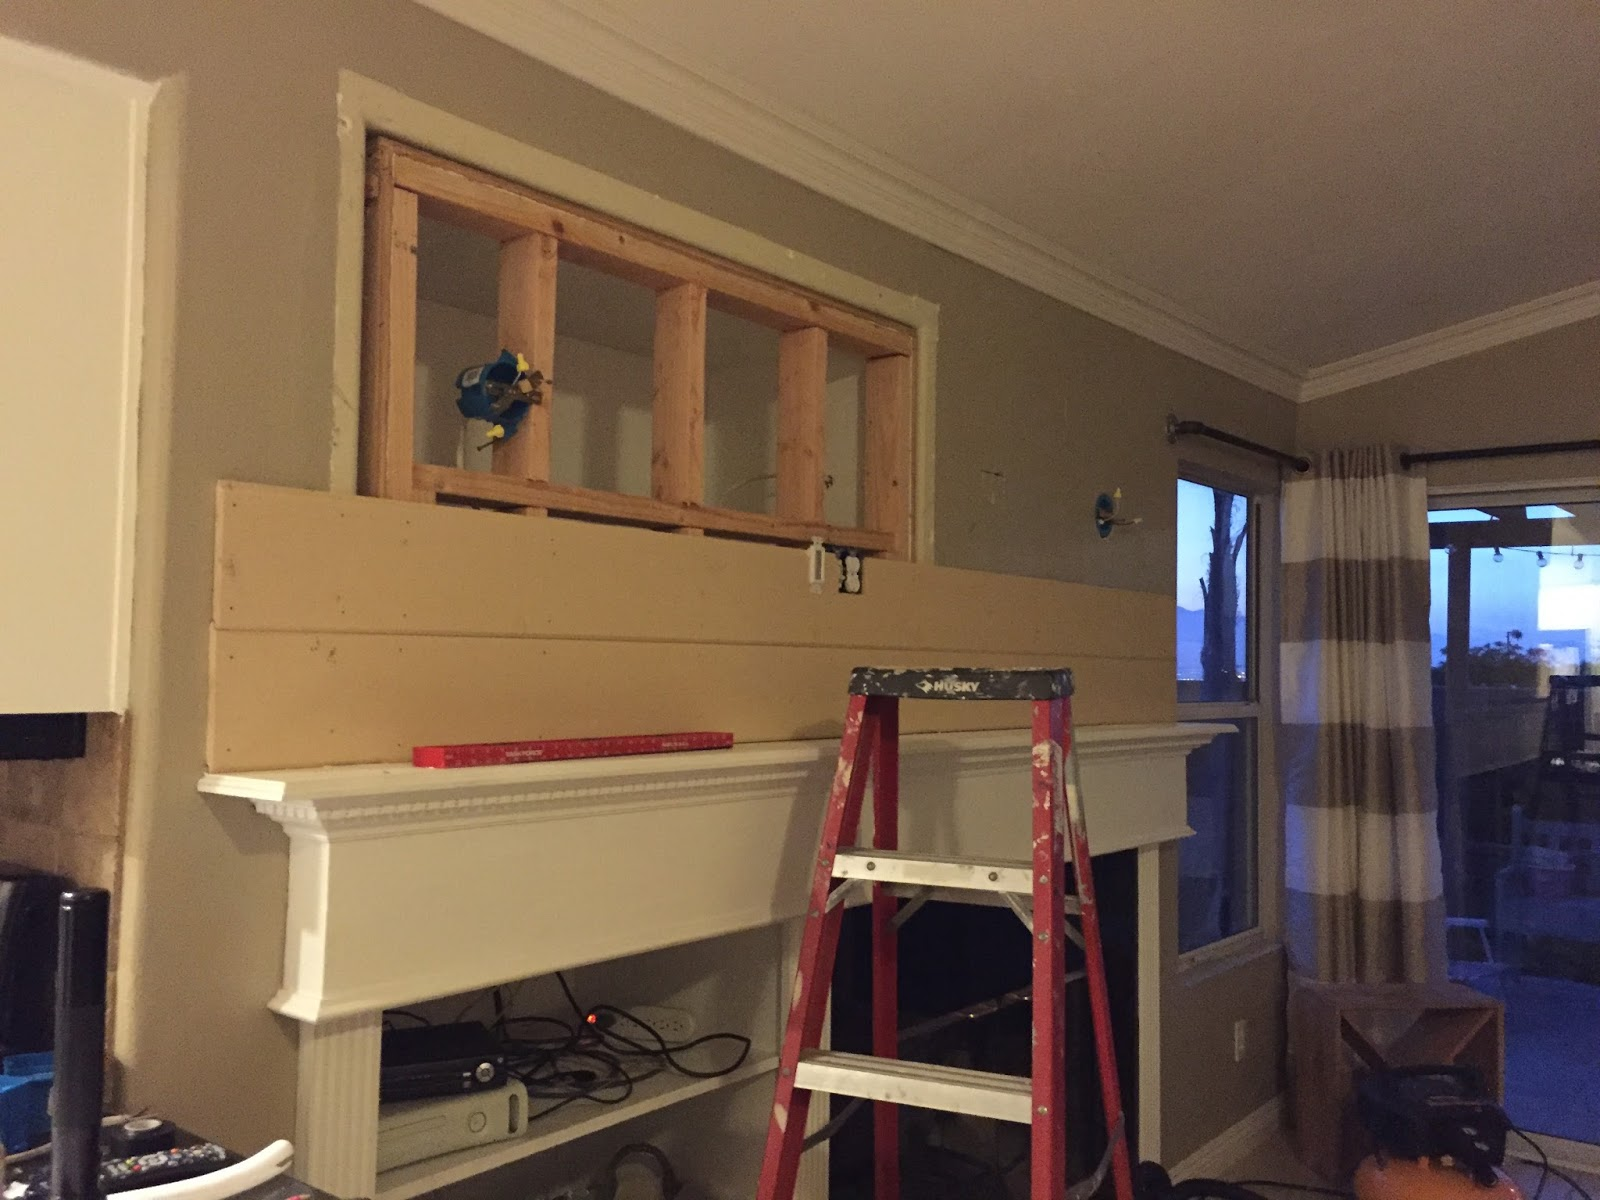 How To Make A Room In Plug Sj